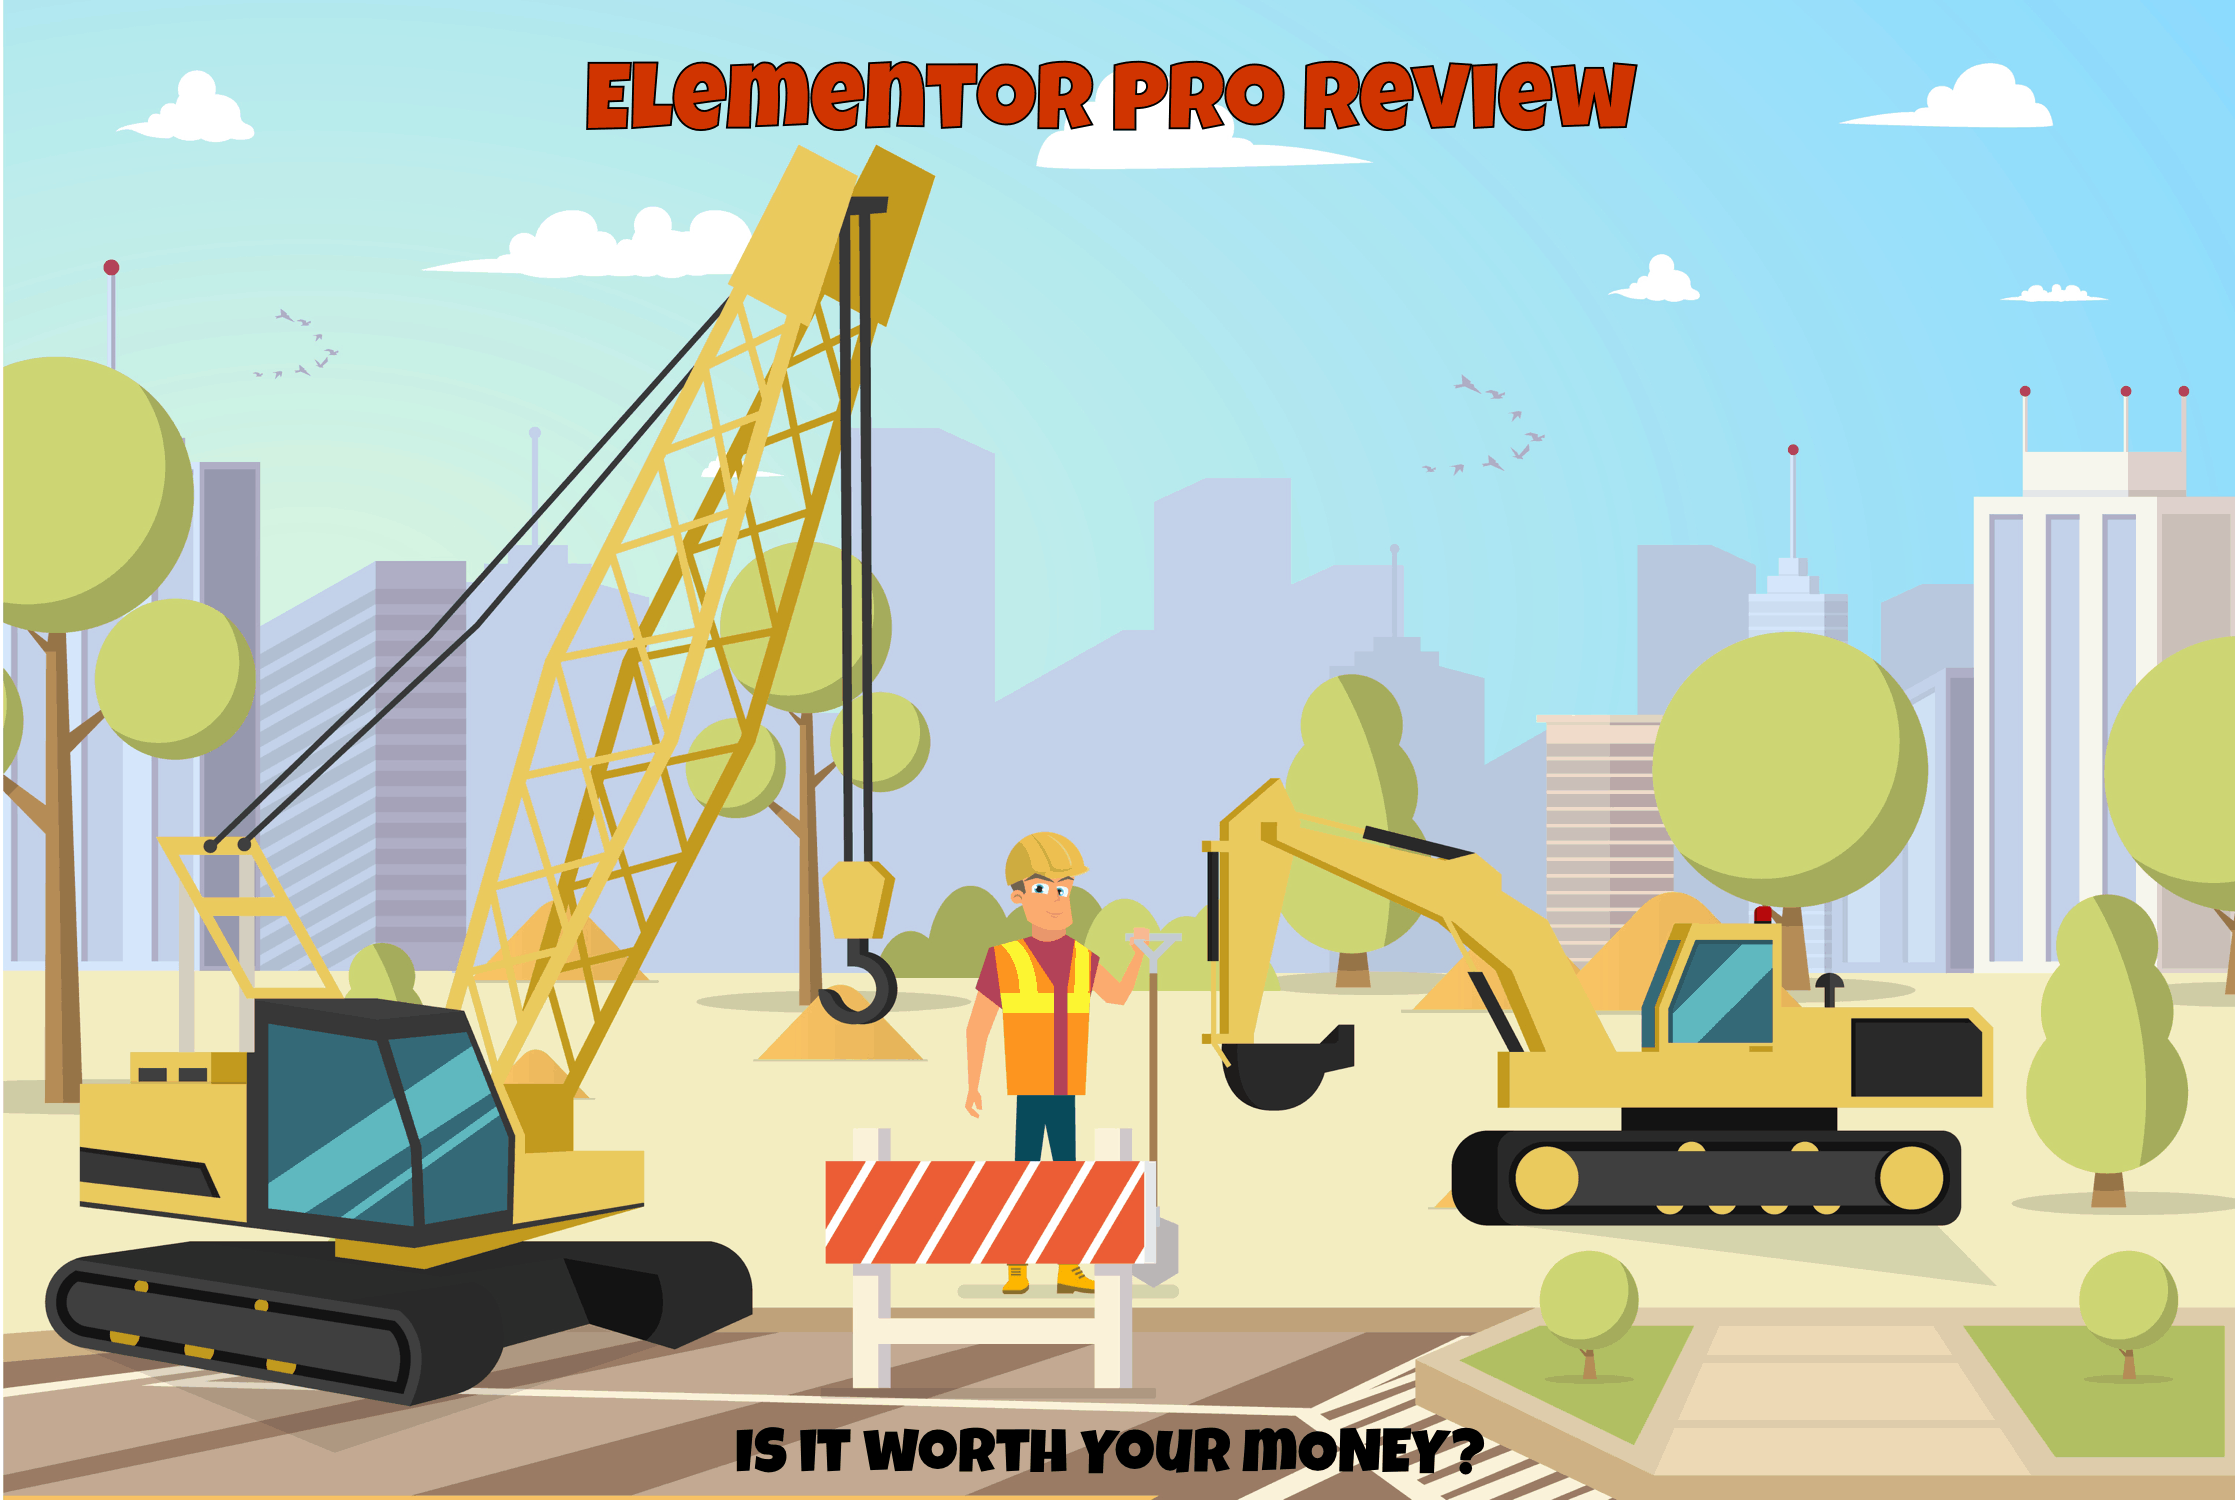 Elementor Pro Review: Is It Worth Your Money? - Online